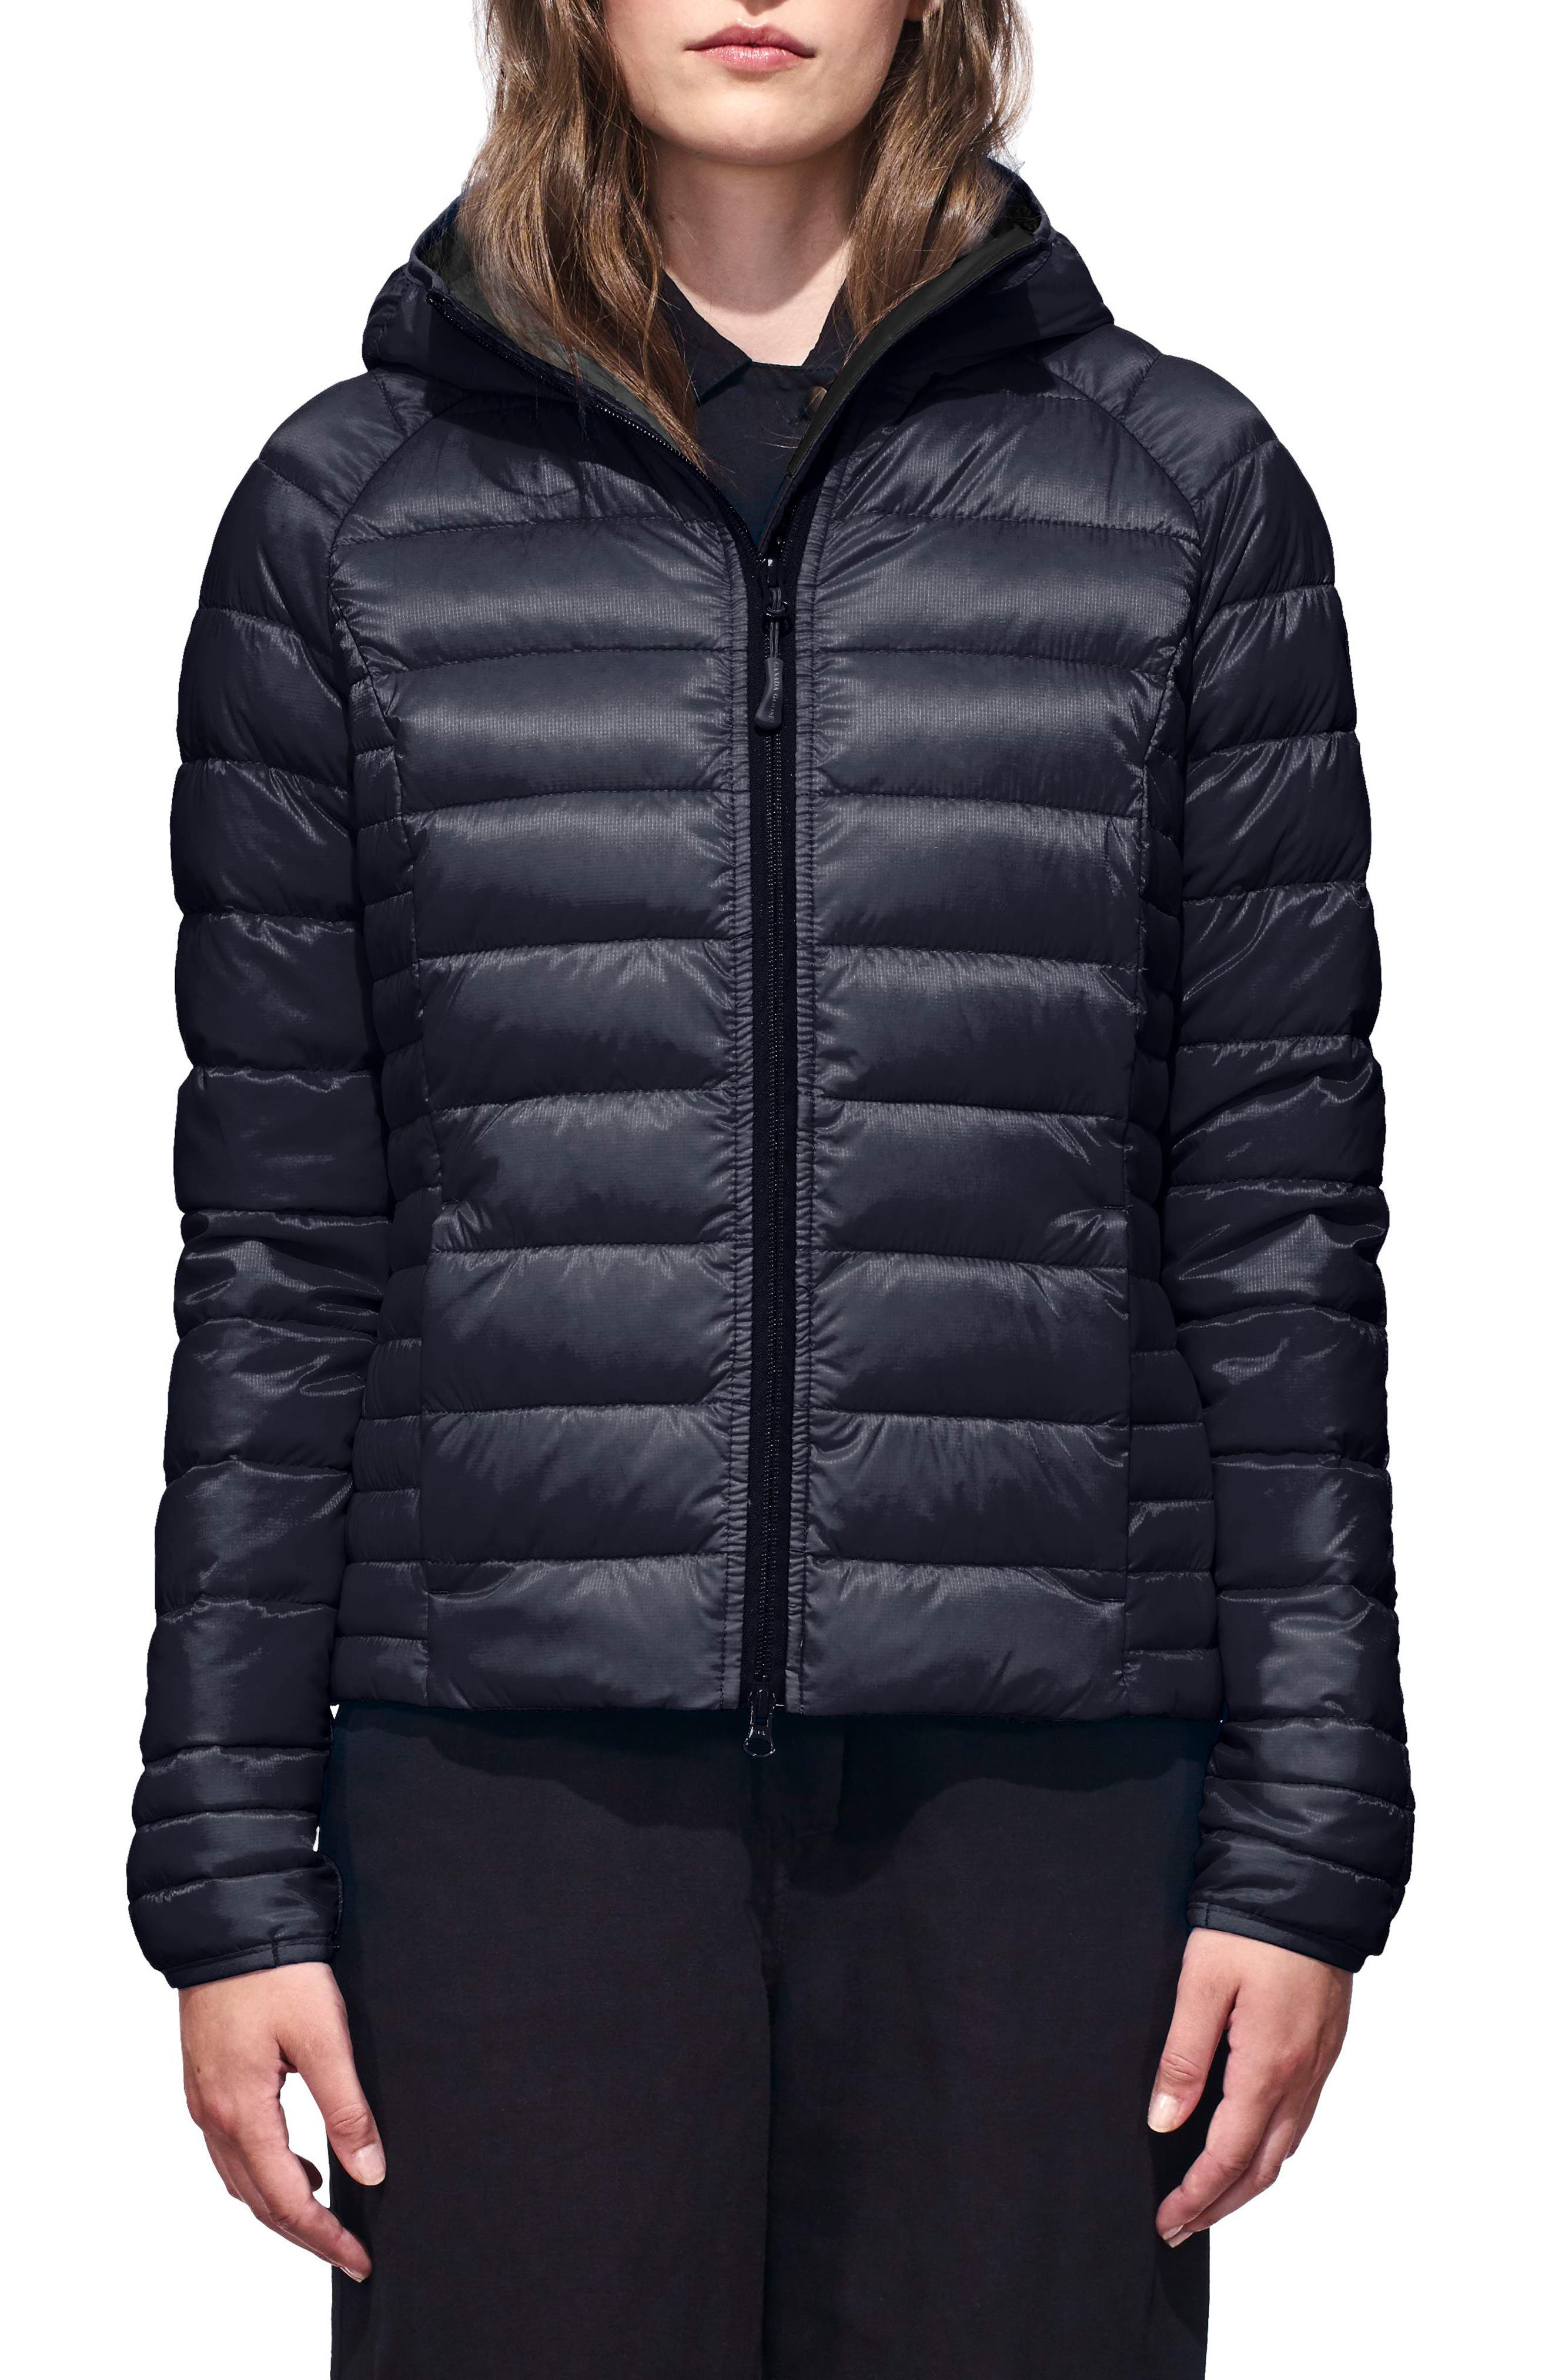 CANADA GOOSE, 'Brookvale' Packable Hooded Quilted Down Jacket, Main thumbnail 1, color, ADMIRAL BLUE/ BLACK